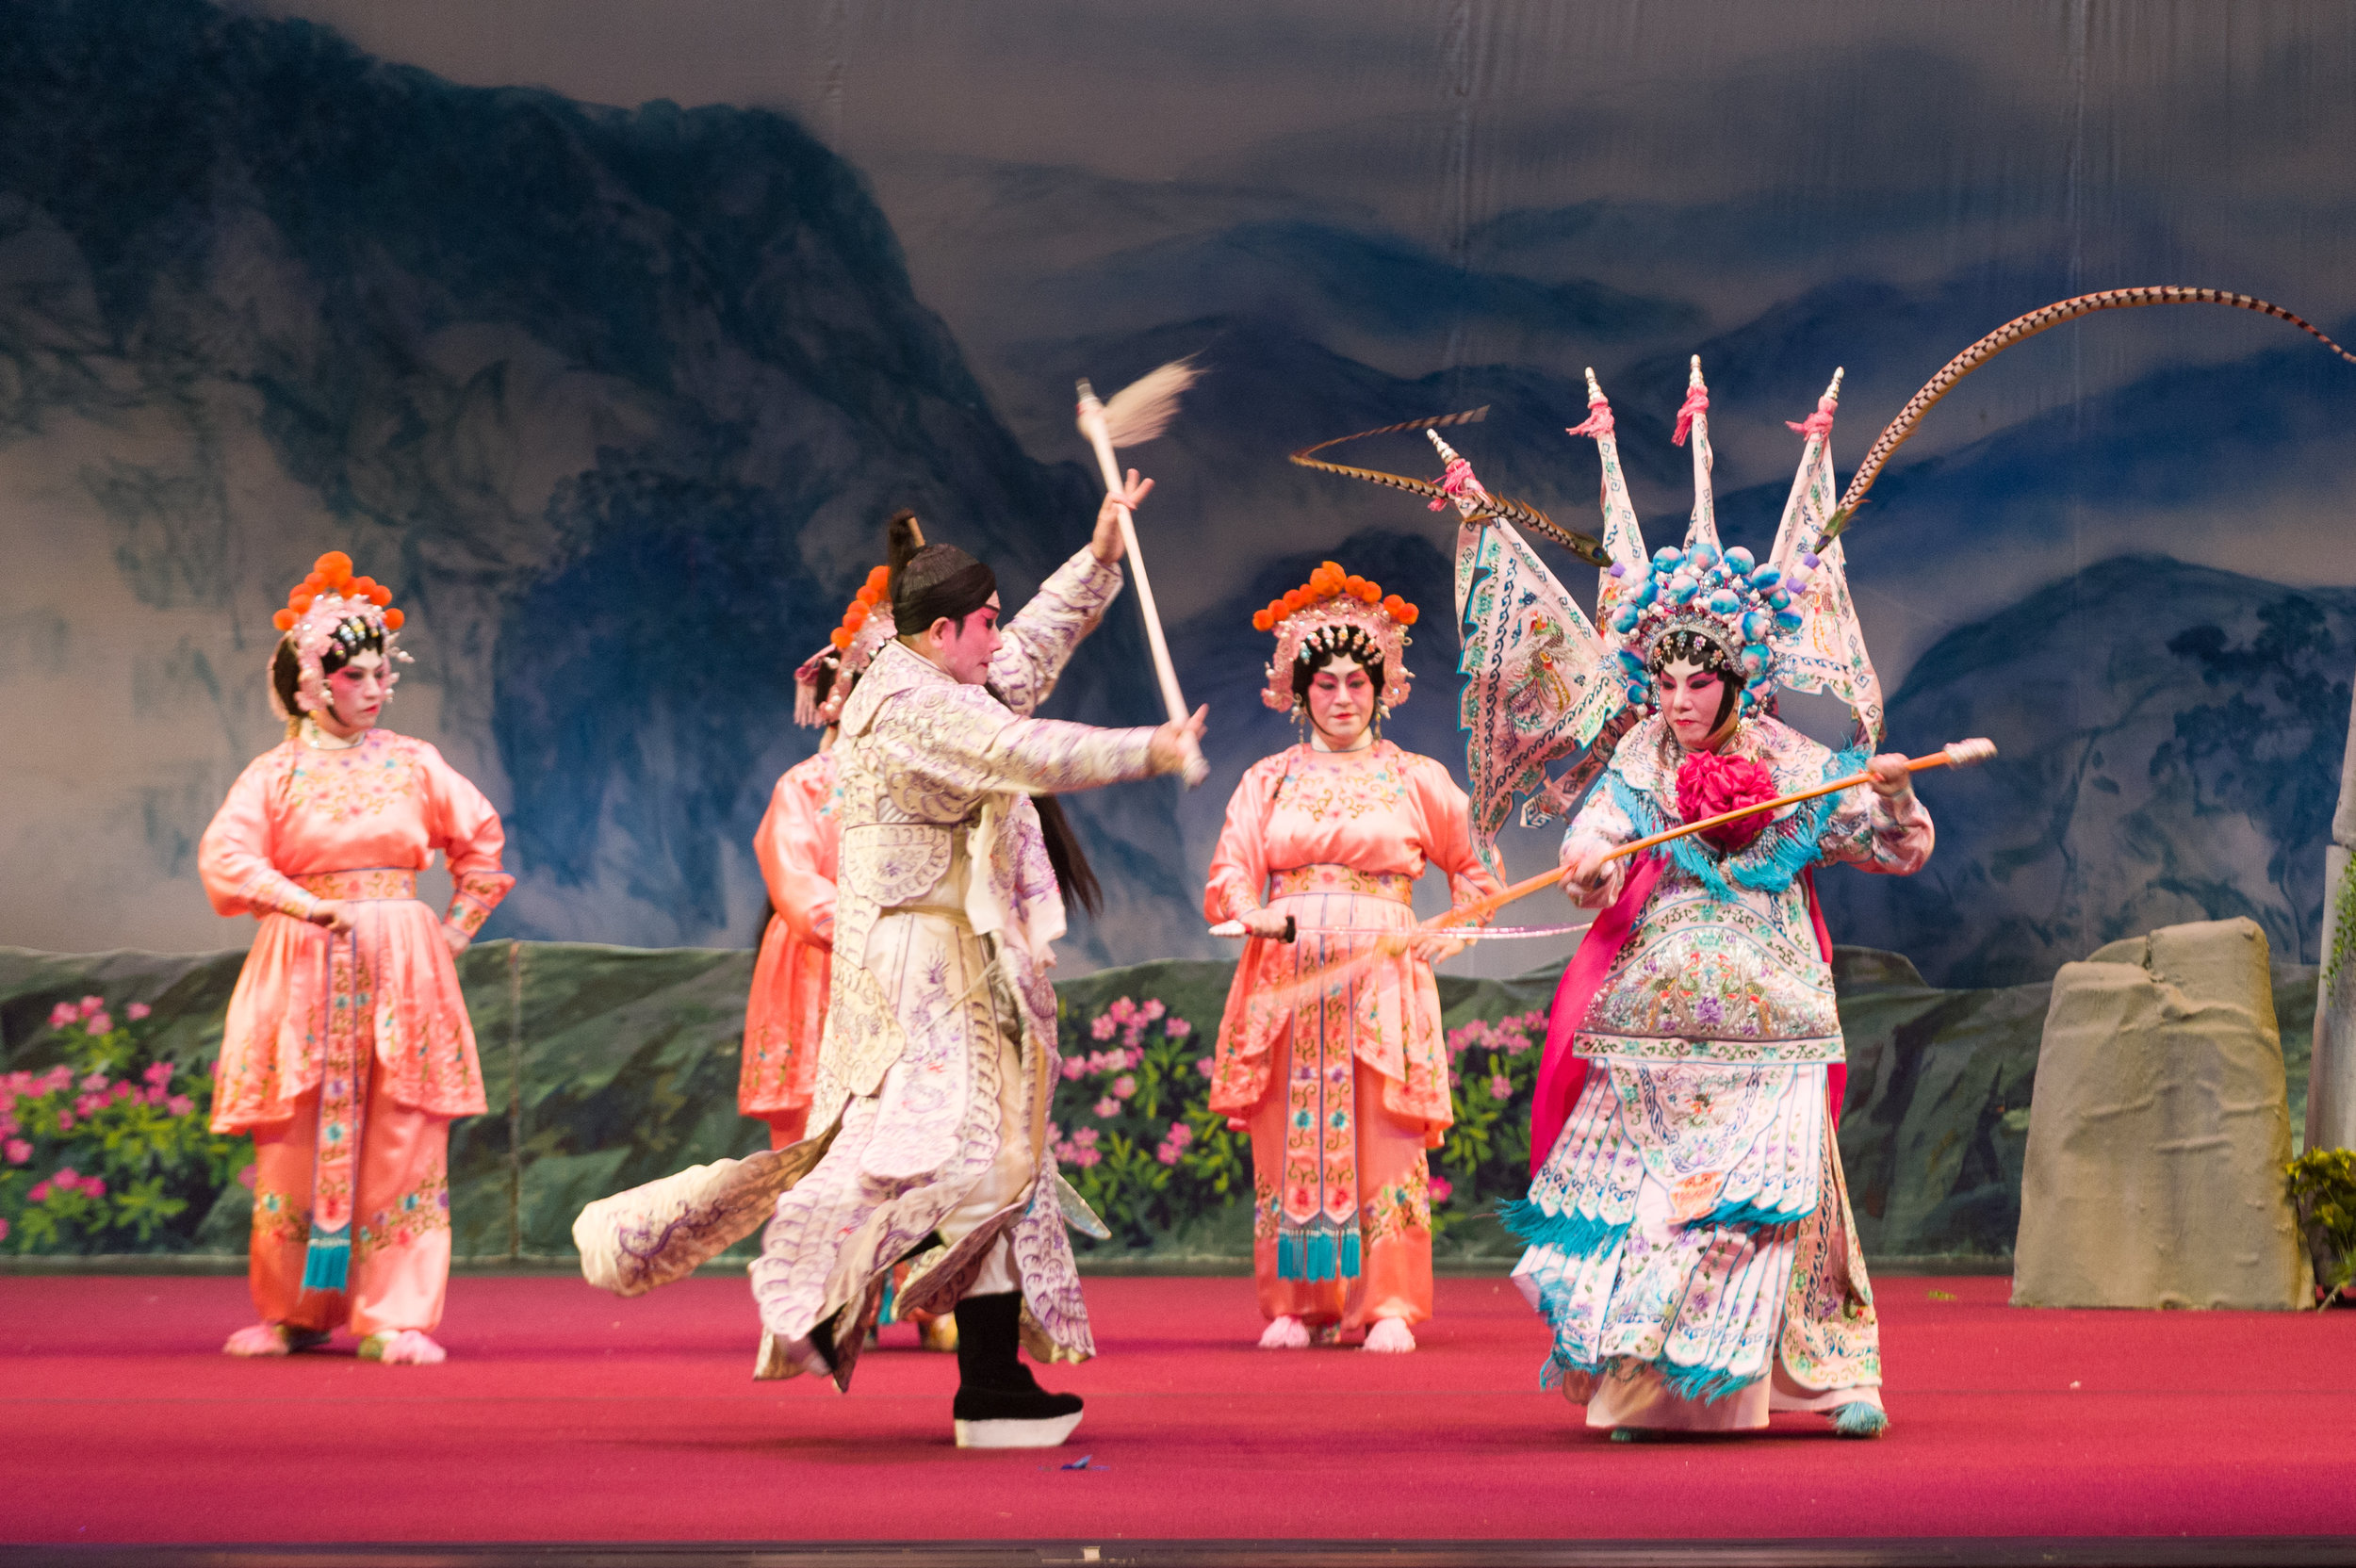 Red.Bean.Cantonese.Opera.Performance.Show.2014.July.27.2014.1584.jpg